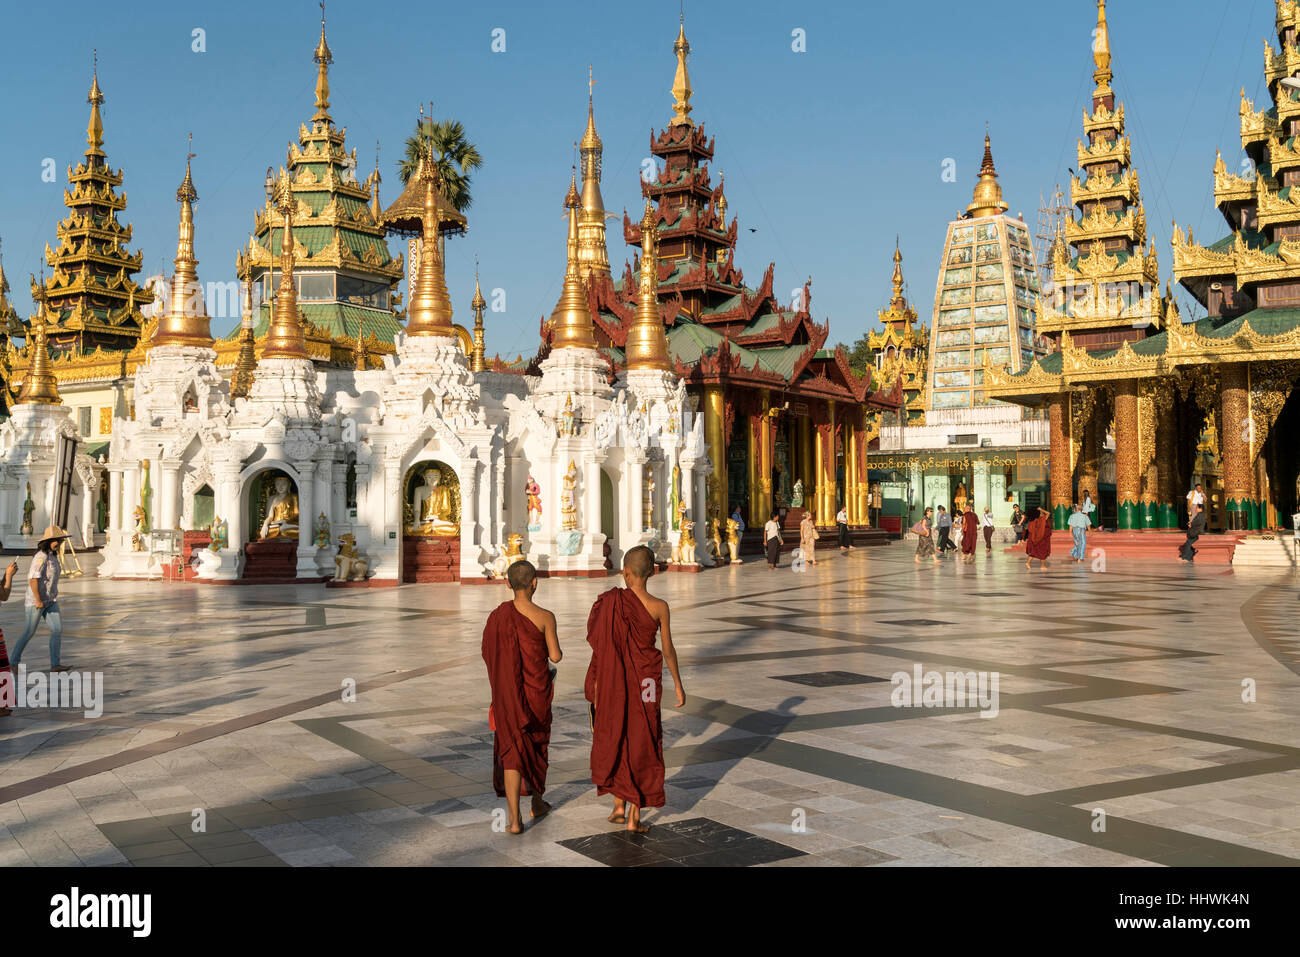 Monks in front of Shwedagon Zedi Daw, Shwedagon Pagoda, Yangon, Myanmar - Stock Image